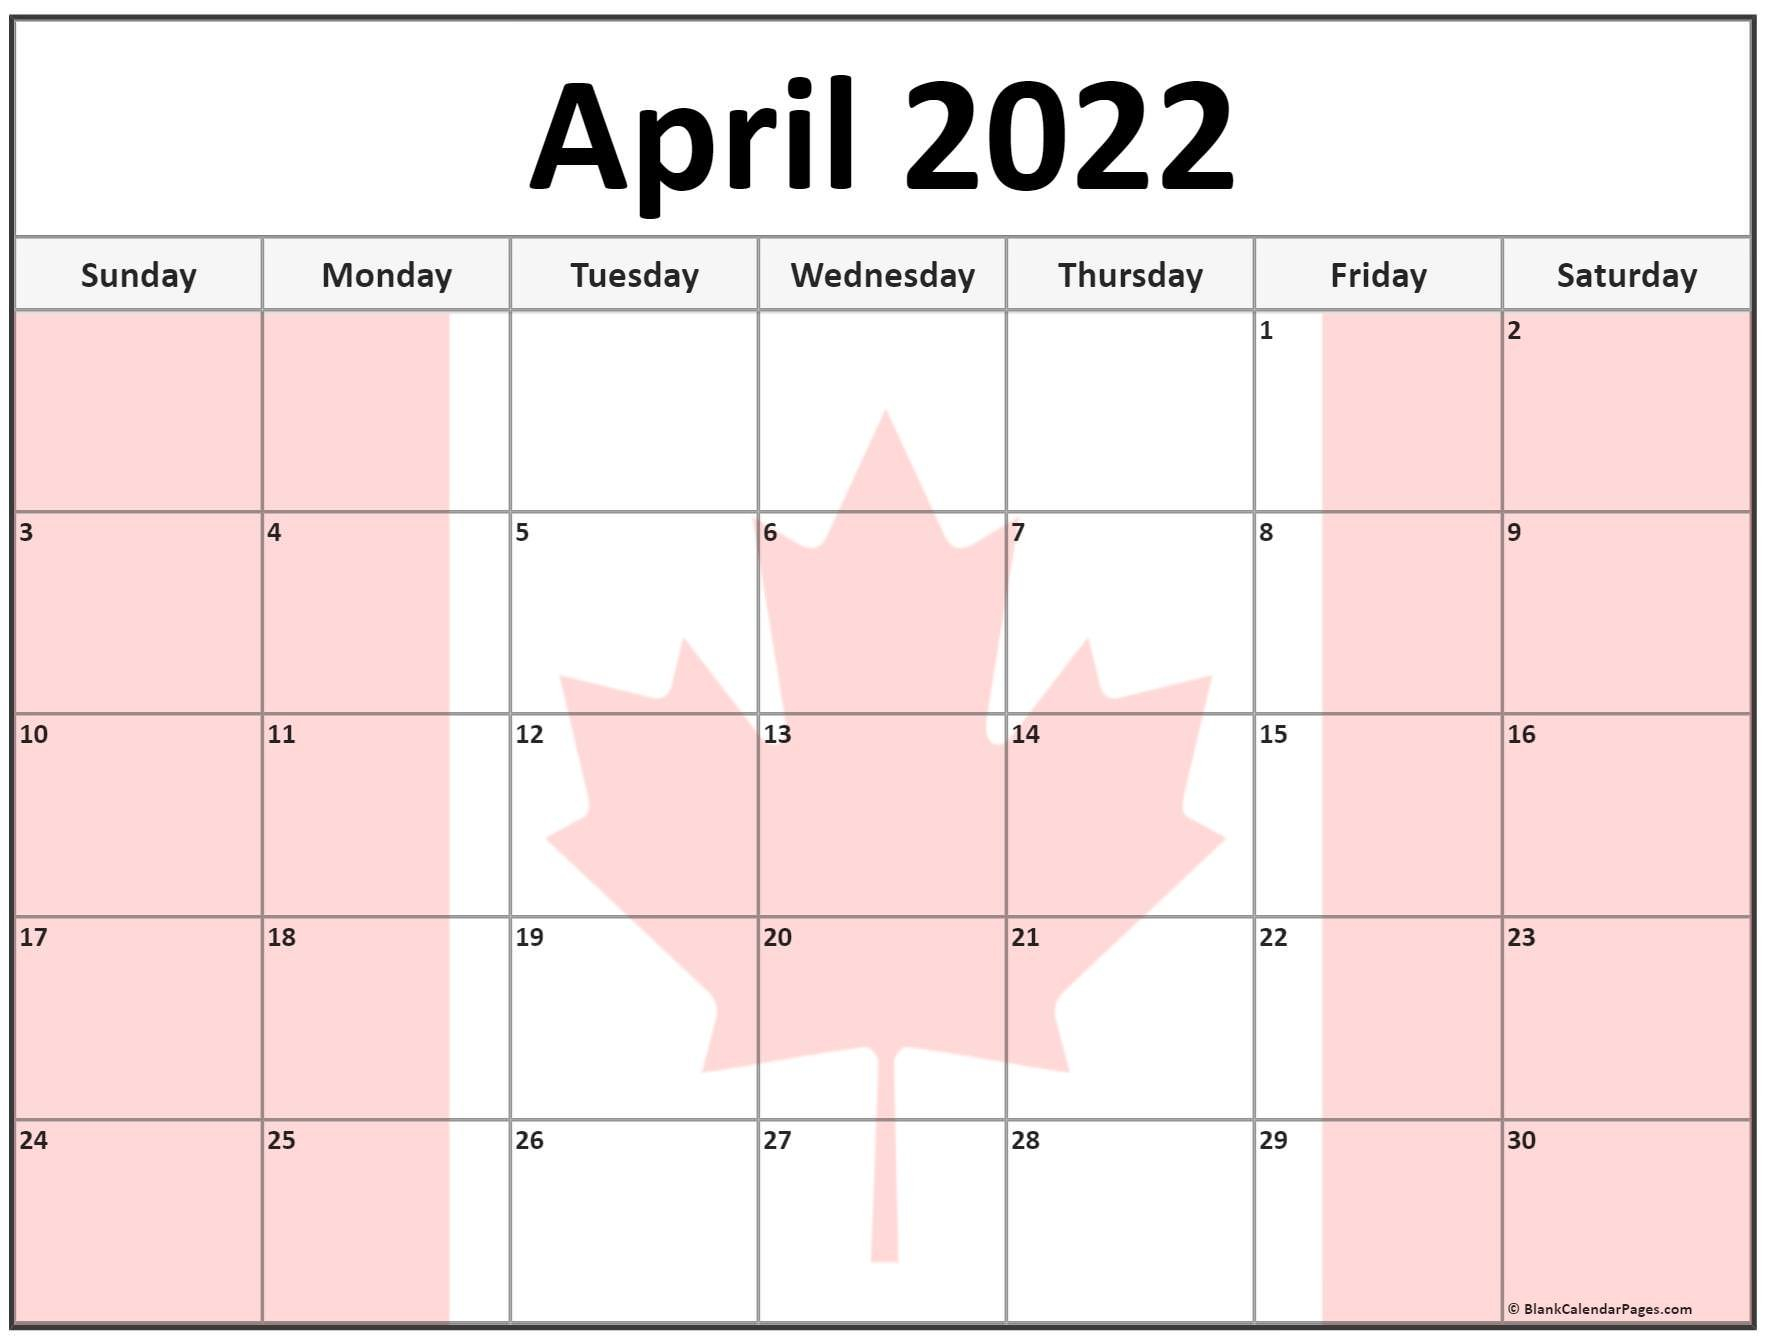 Collection Of April 2022 Photo Calendars With Image Filters. with April 2022 Printable Calendar Free 2022